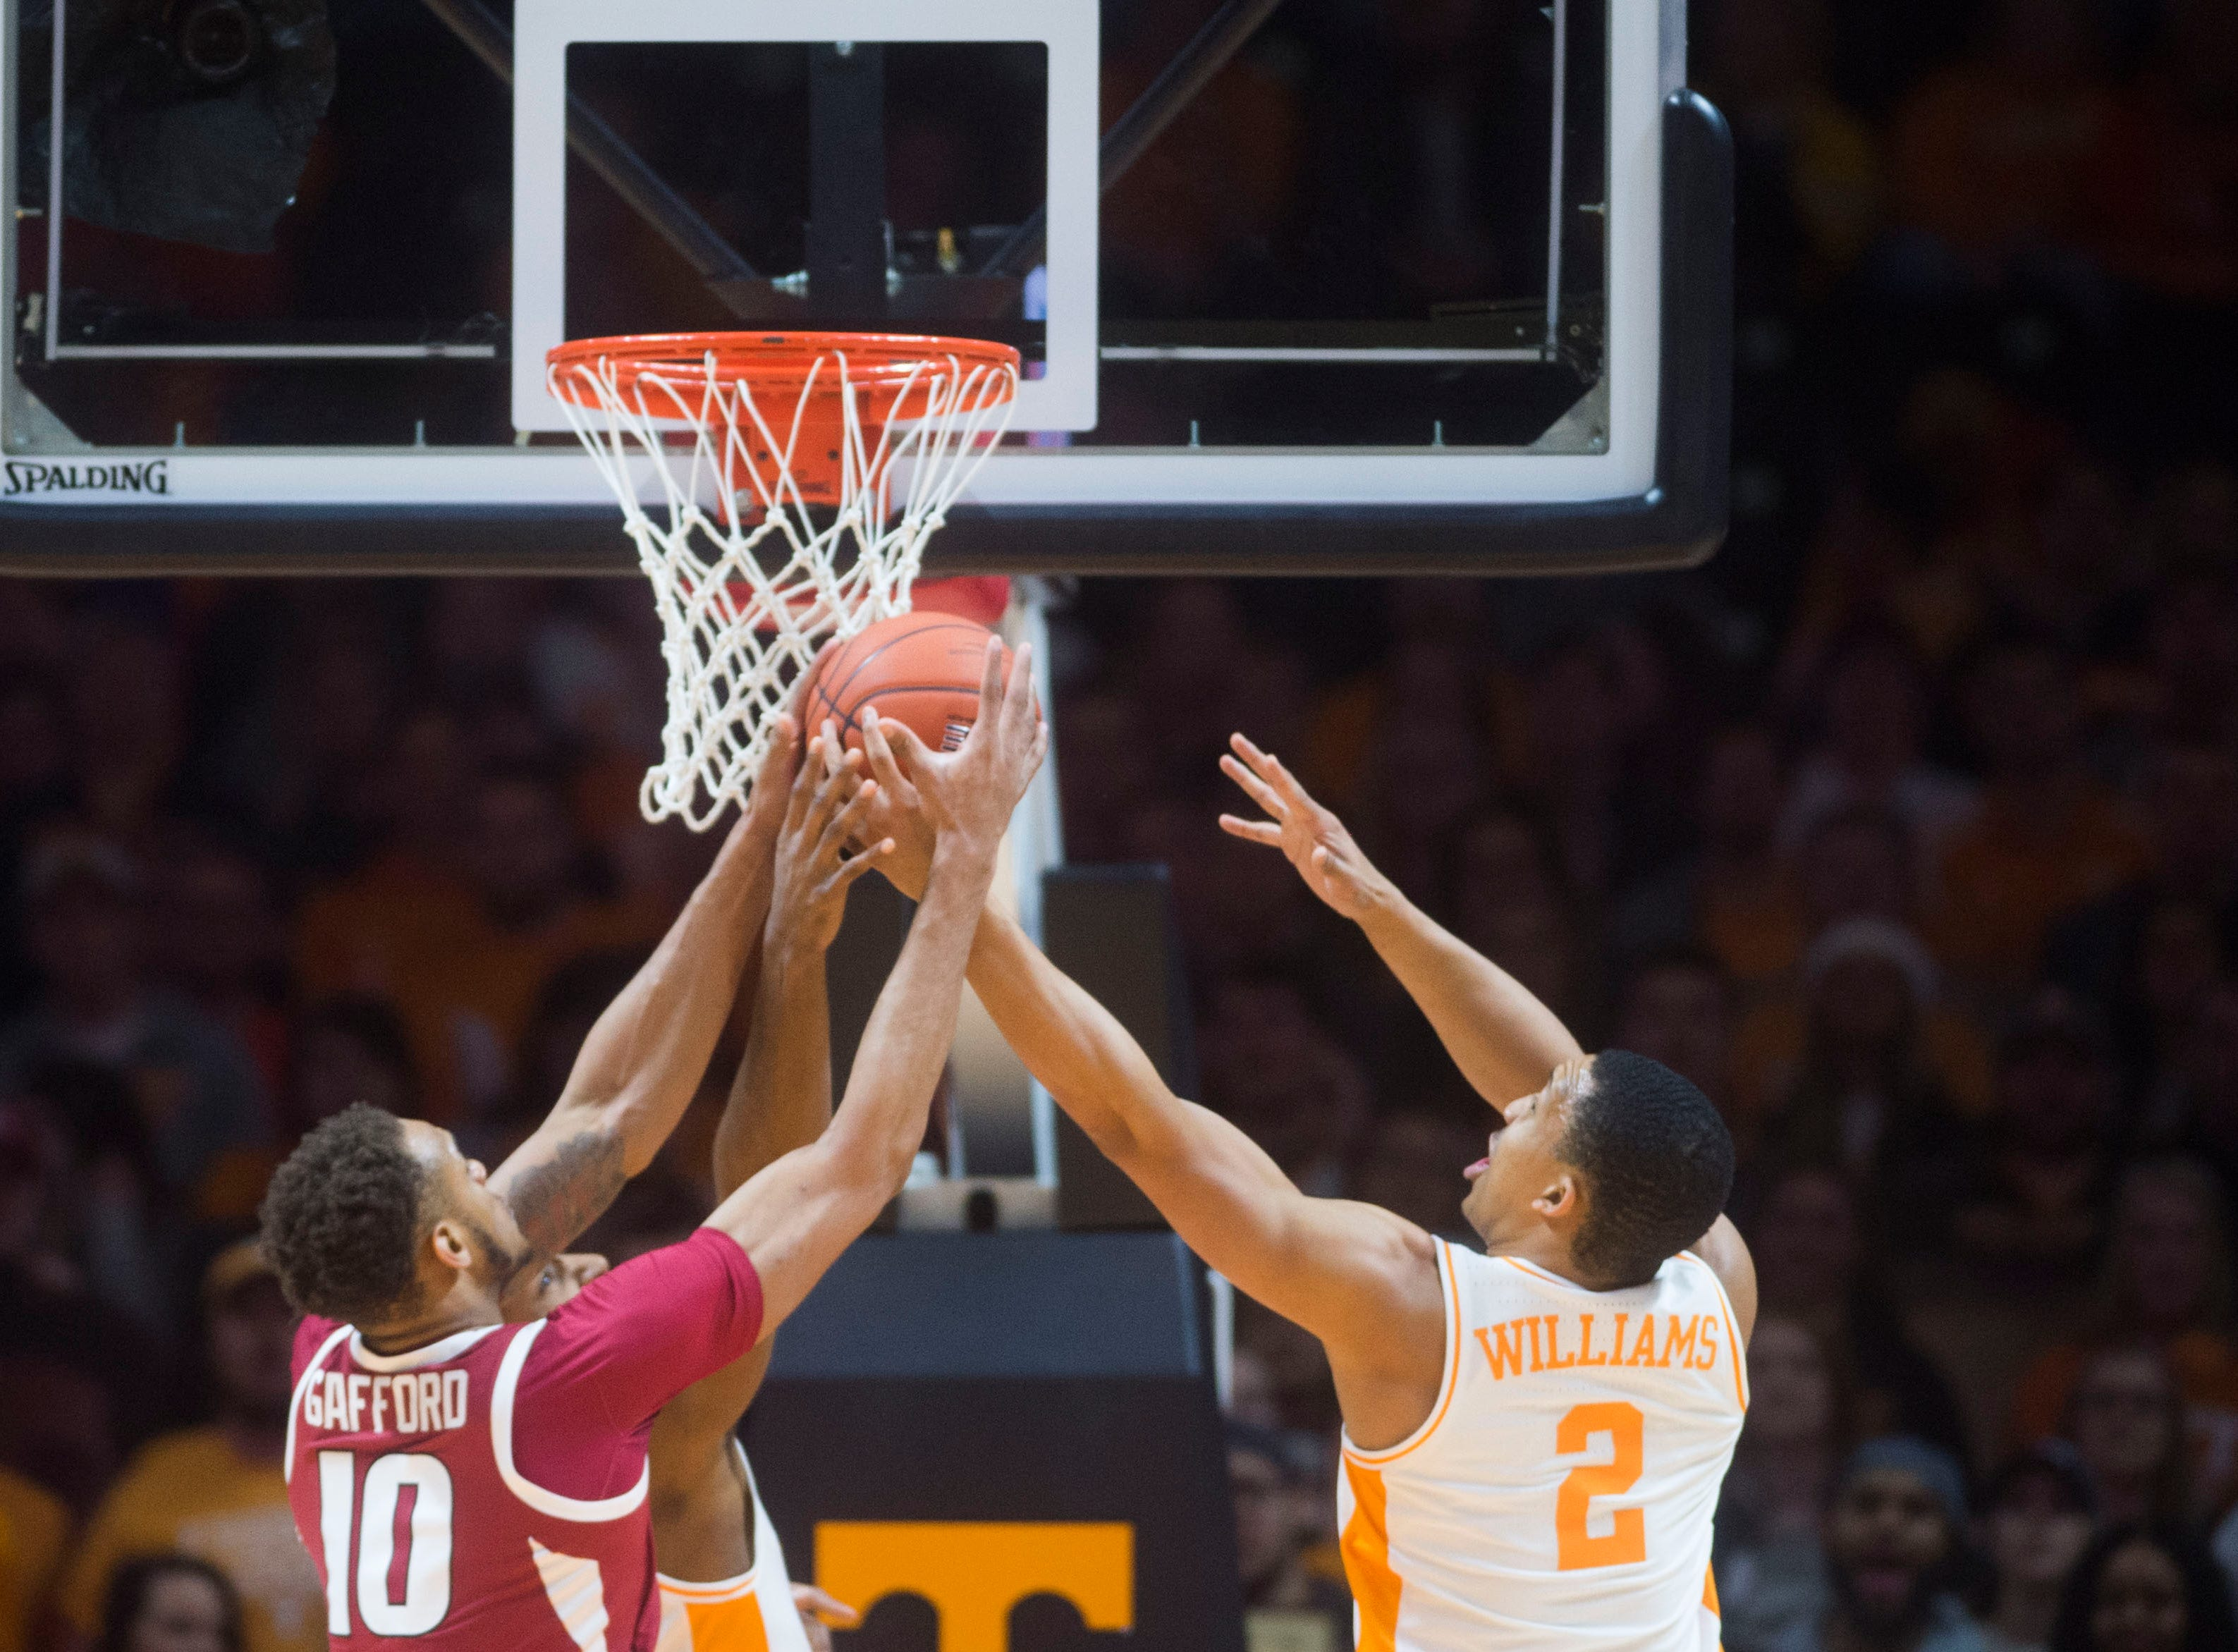 Tennessee's Grant Williams (2) blocks a shot by Arkansas' Daniel Gafford (10) during a NCAA men's basketball game between Tennessee and Arkansas at Thompson-Boling Arena Tuesday, Jan. 15, 2019.